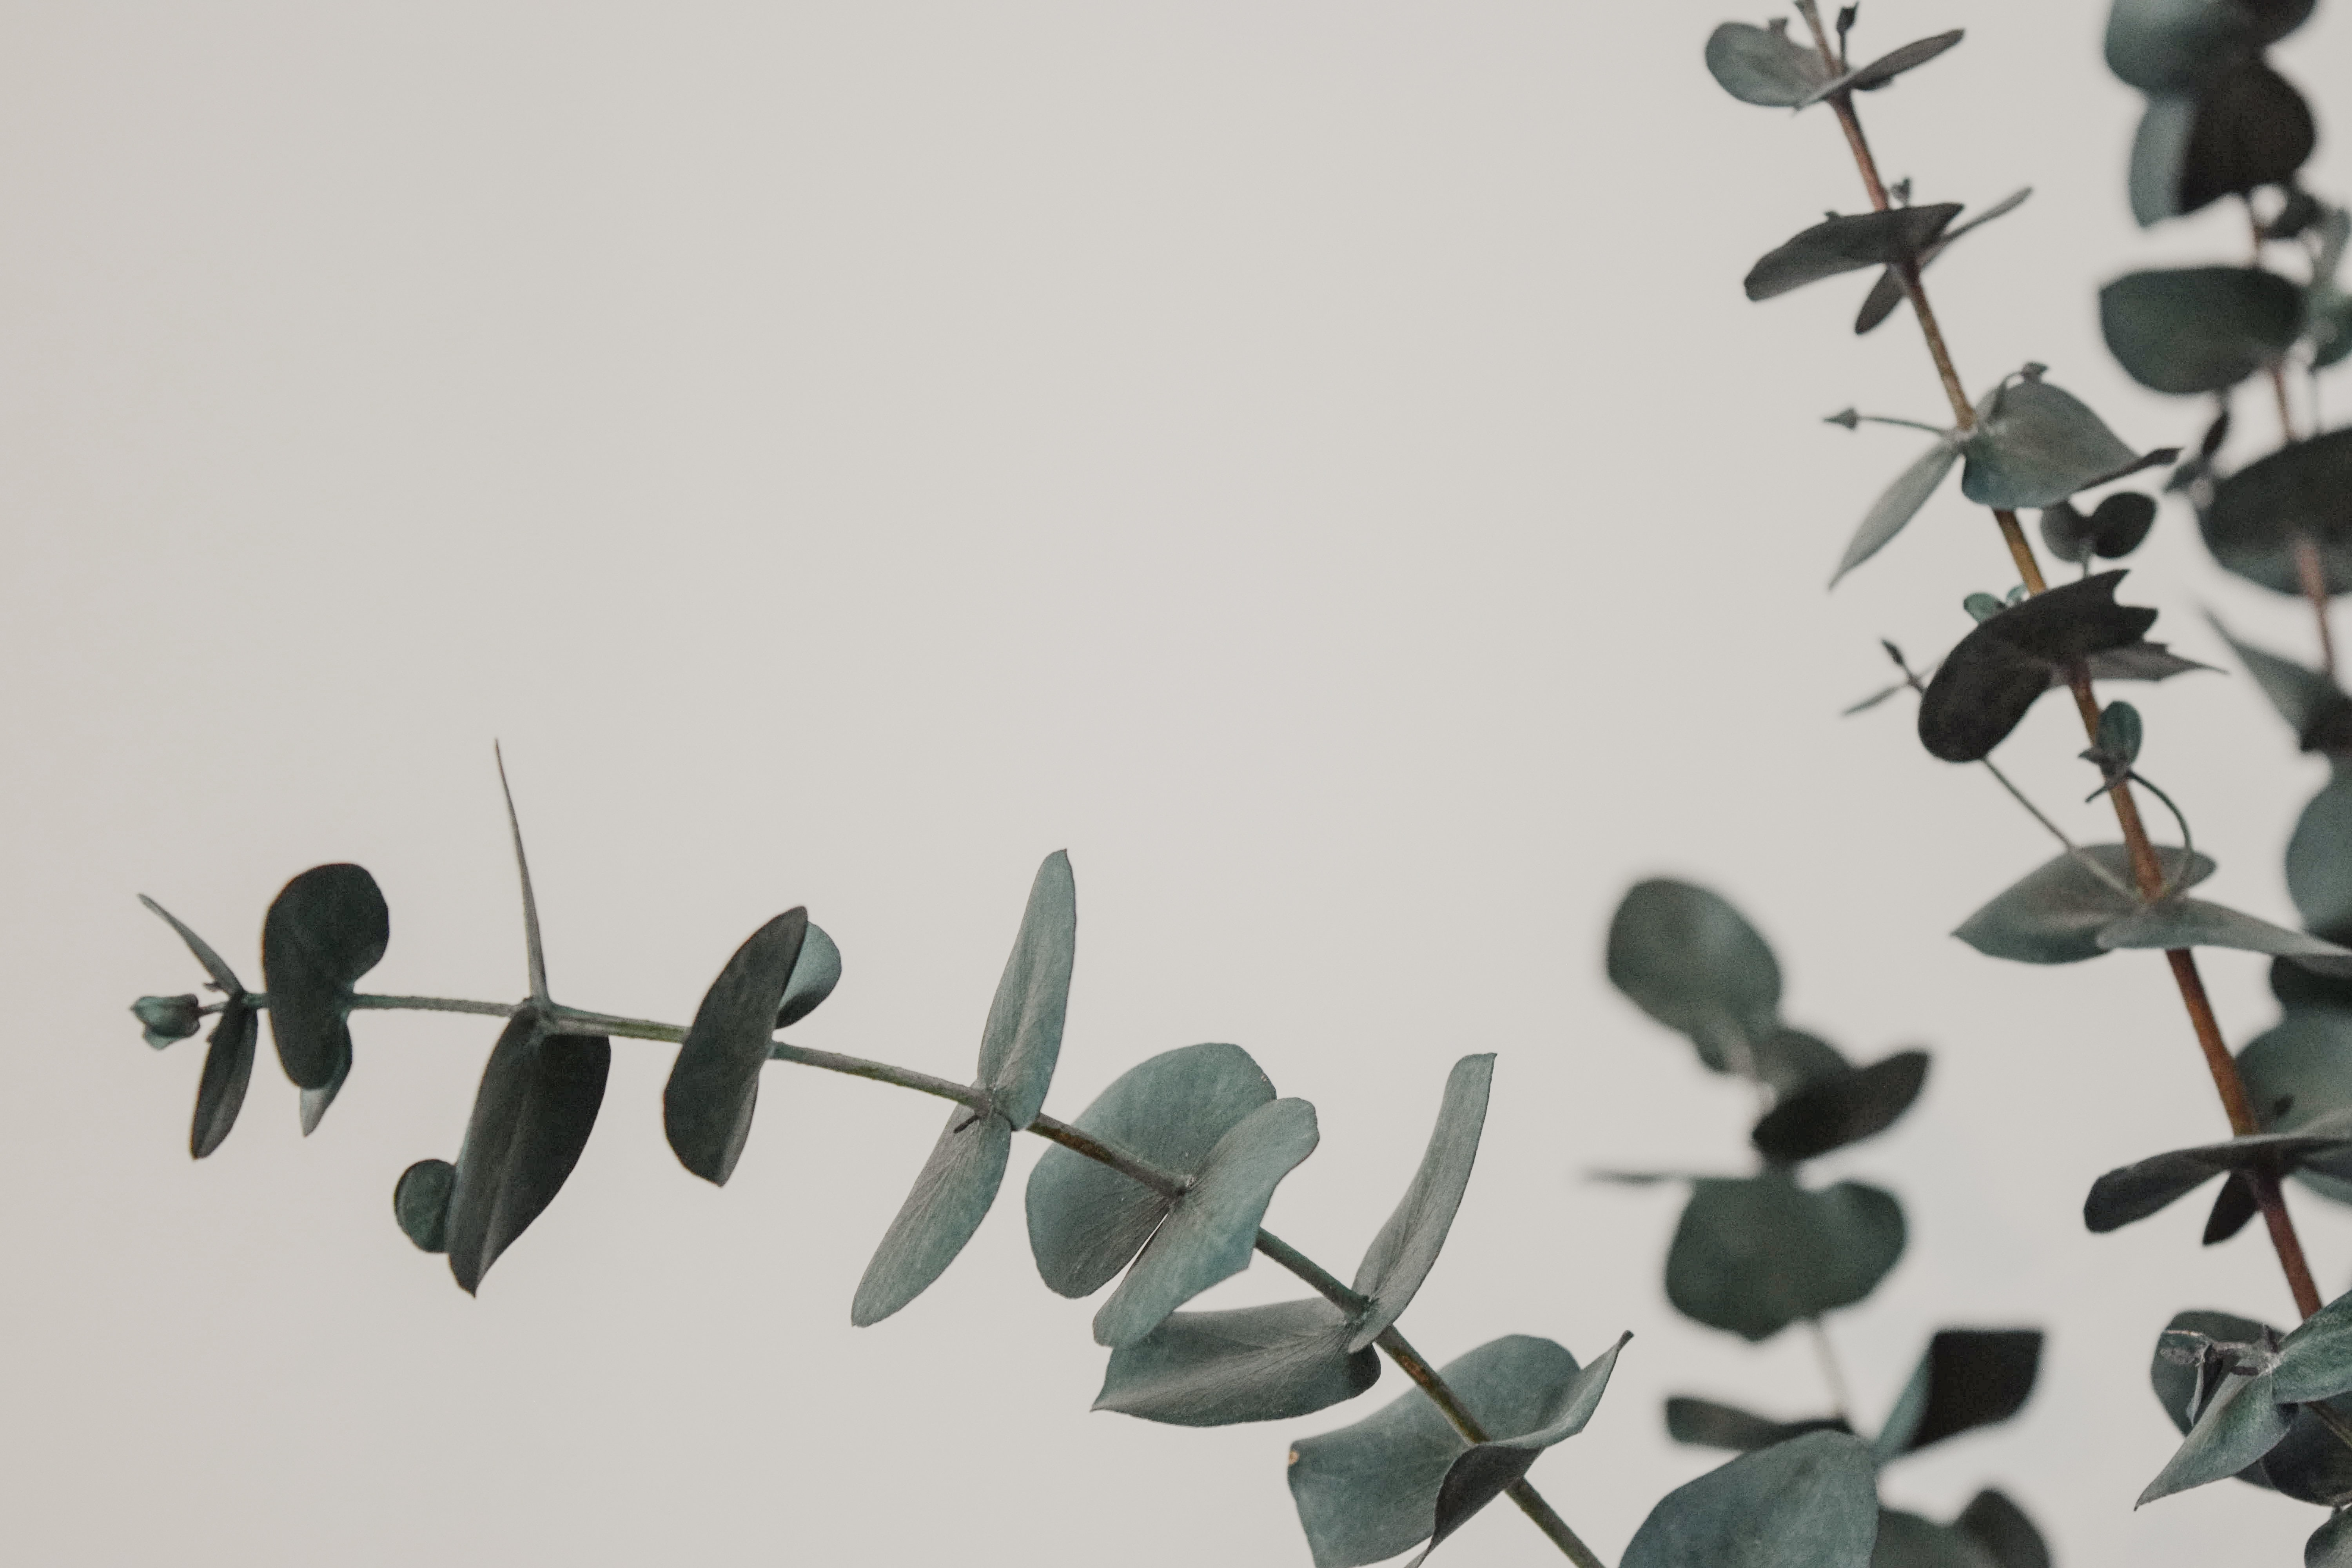 green leafed plant in close-up photography